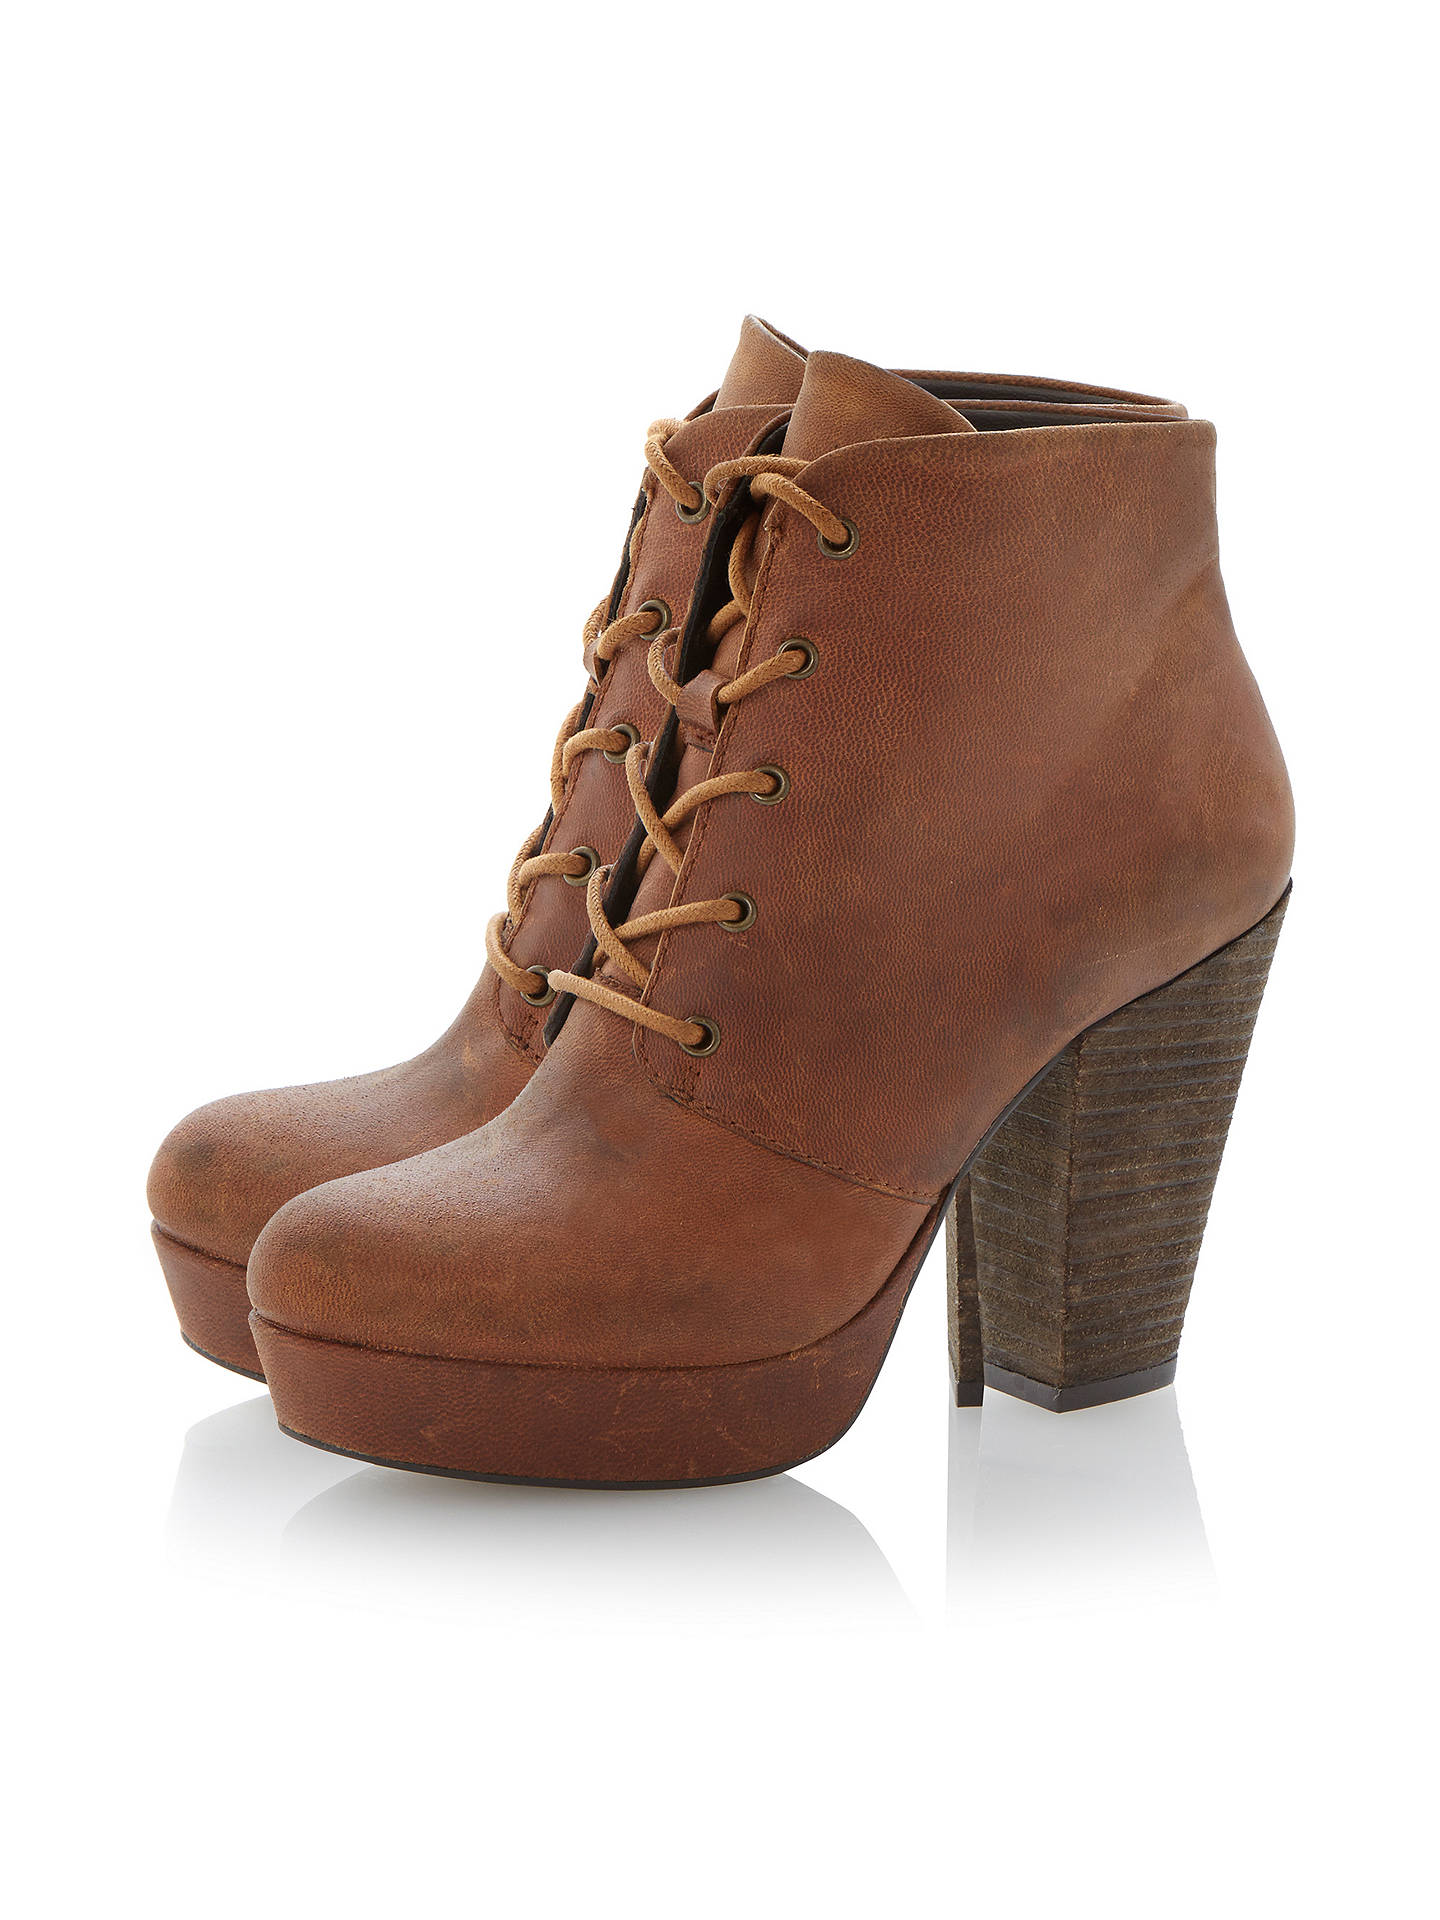 cac6605706a Buy Steve Madden Raspy Platform Leather Ankle Boots